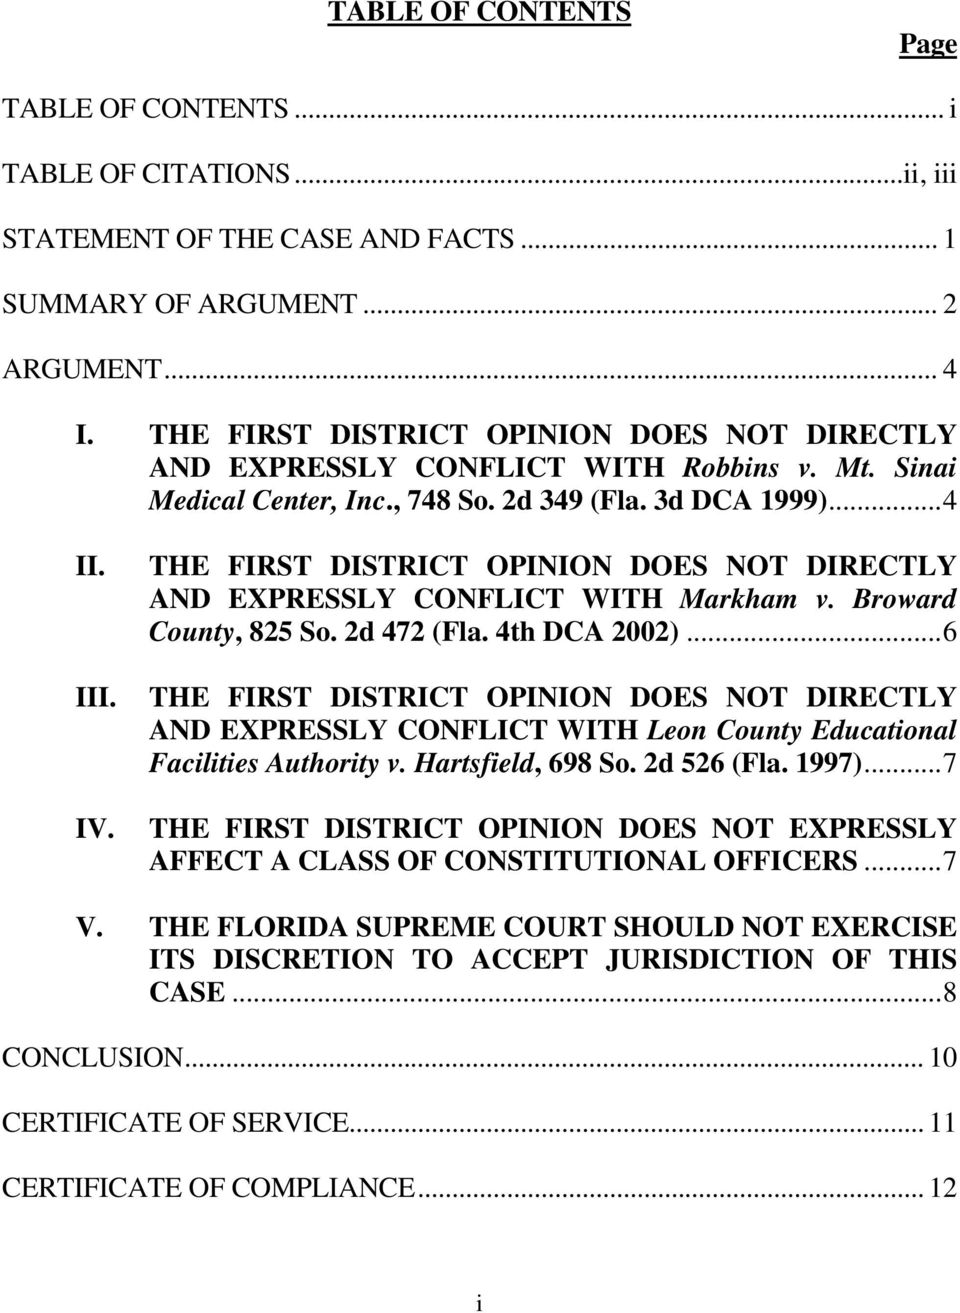 THE FIRST DISTRICT OPINION DOES NOT DIRECTLY AND EXPRESSLY CONFLICT WITH Markham v. Broward County, 825 So. 2d 472 (Fla. 4th DCA 2002).